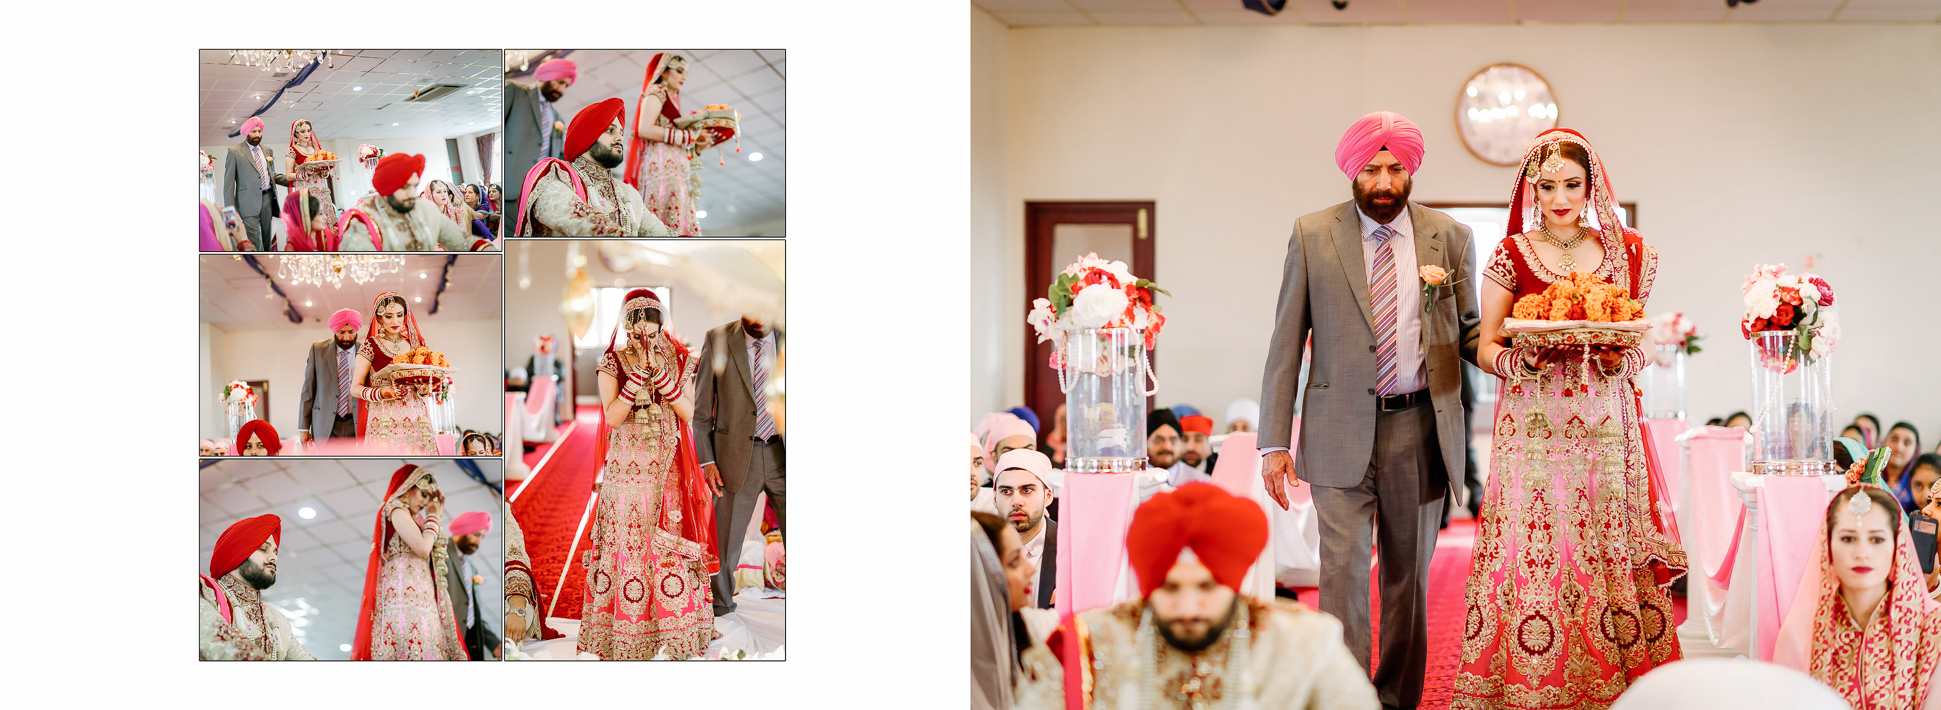 indian-wedding-photographer-sikh-21-of-43